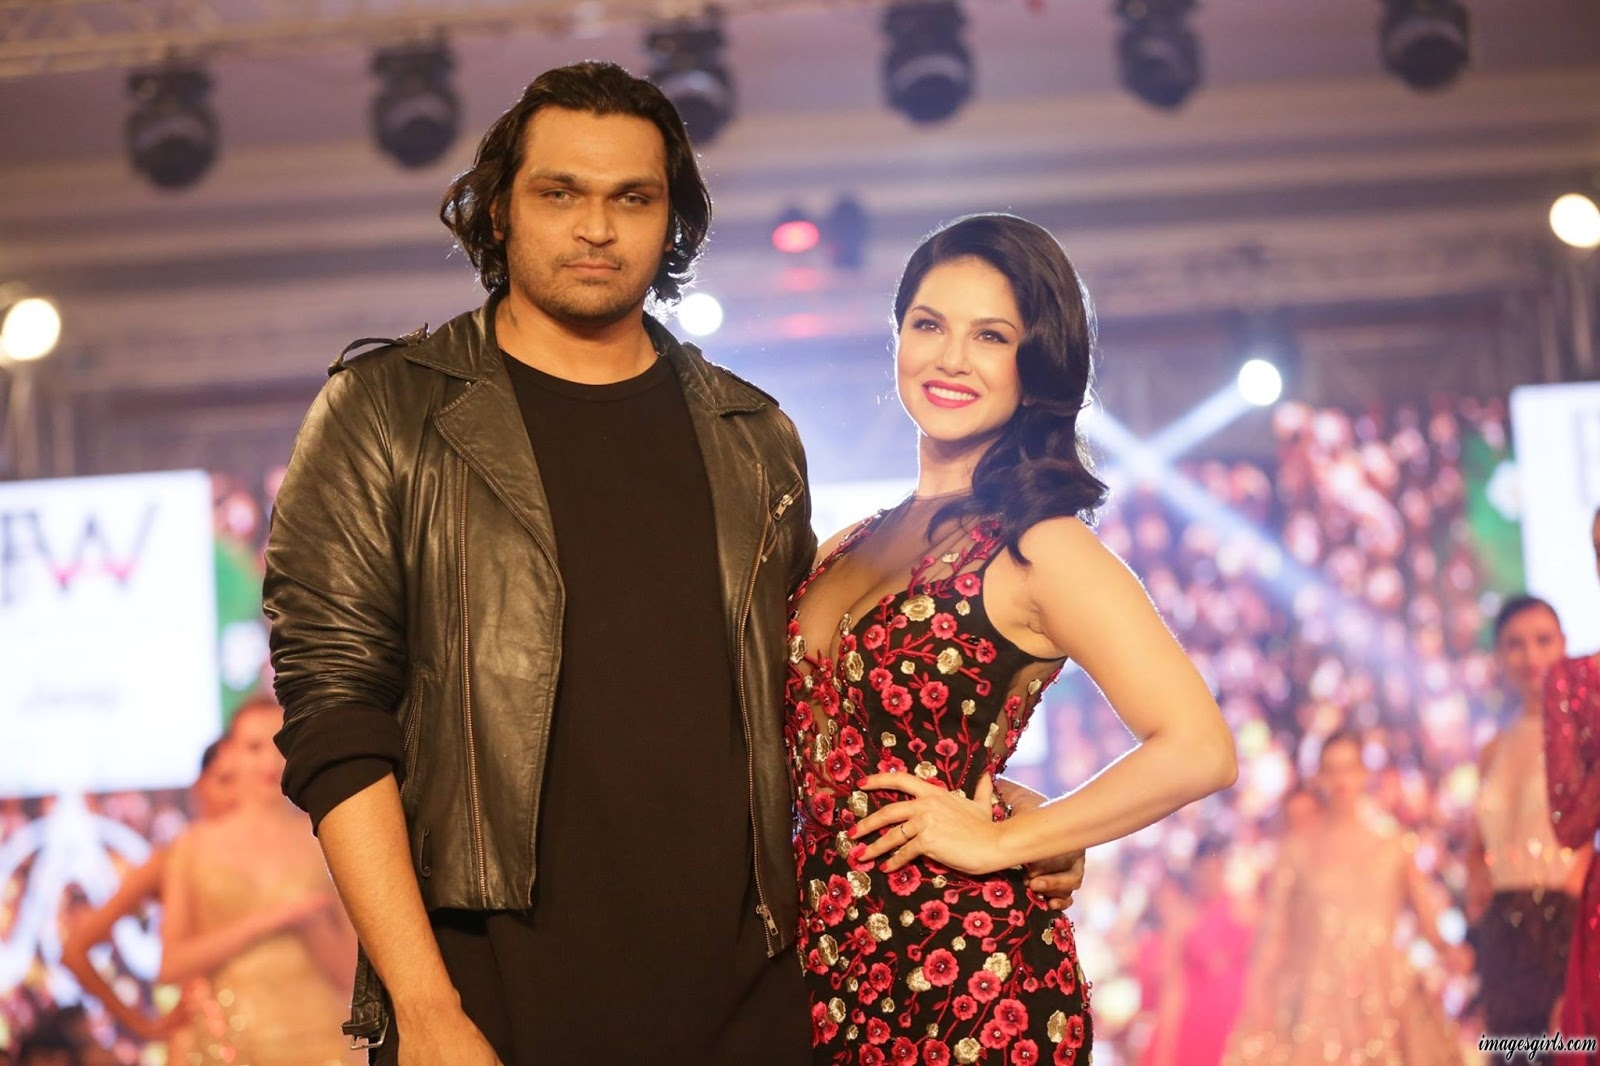 Sunny Leone Walks On Stage At The India Beach Fashion Week - Images Girls-1846